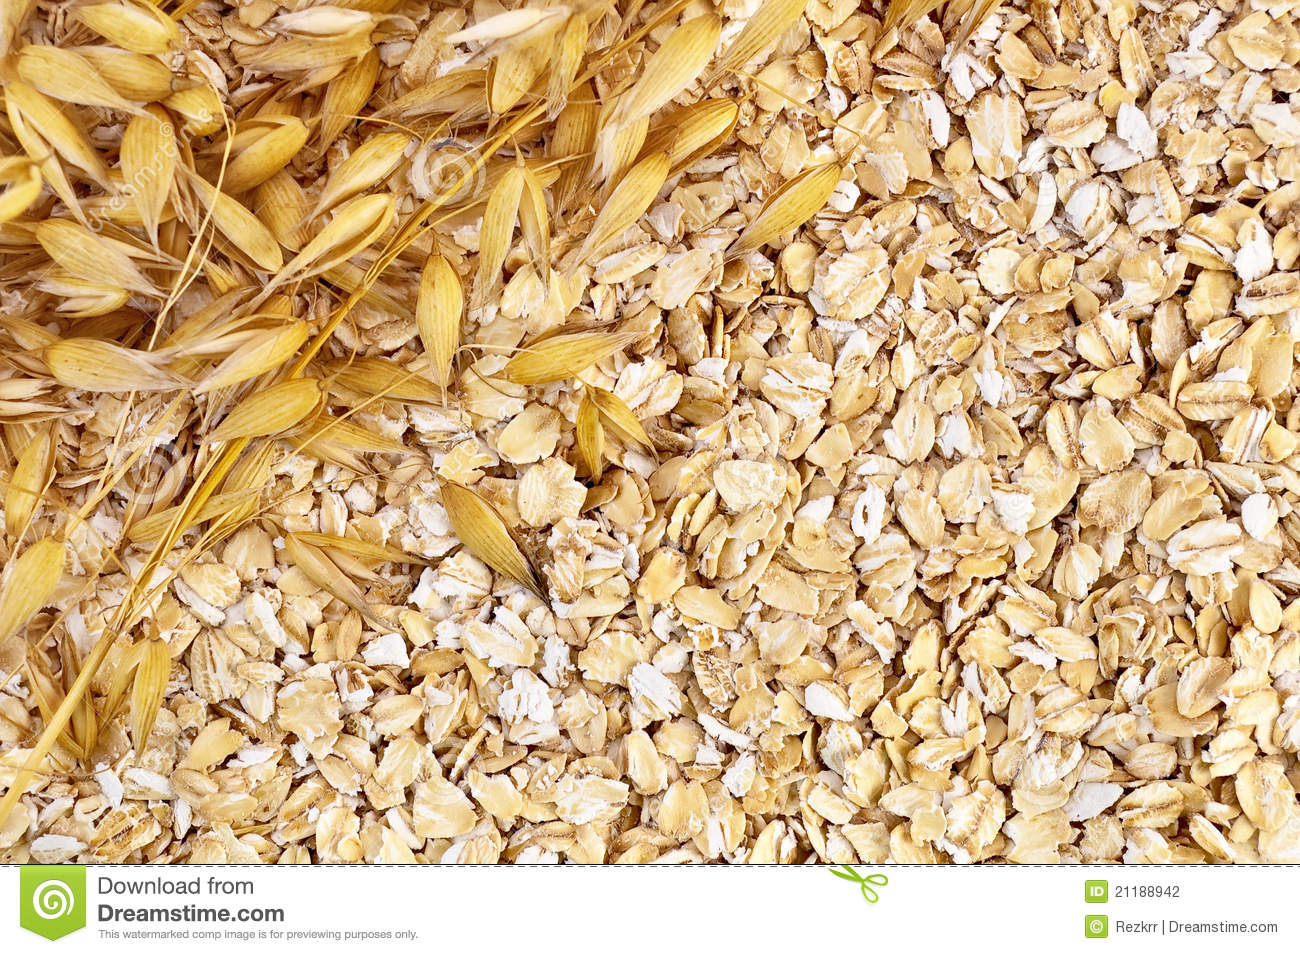 The texture of oatmeal with oat stalks left